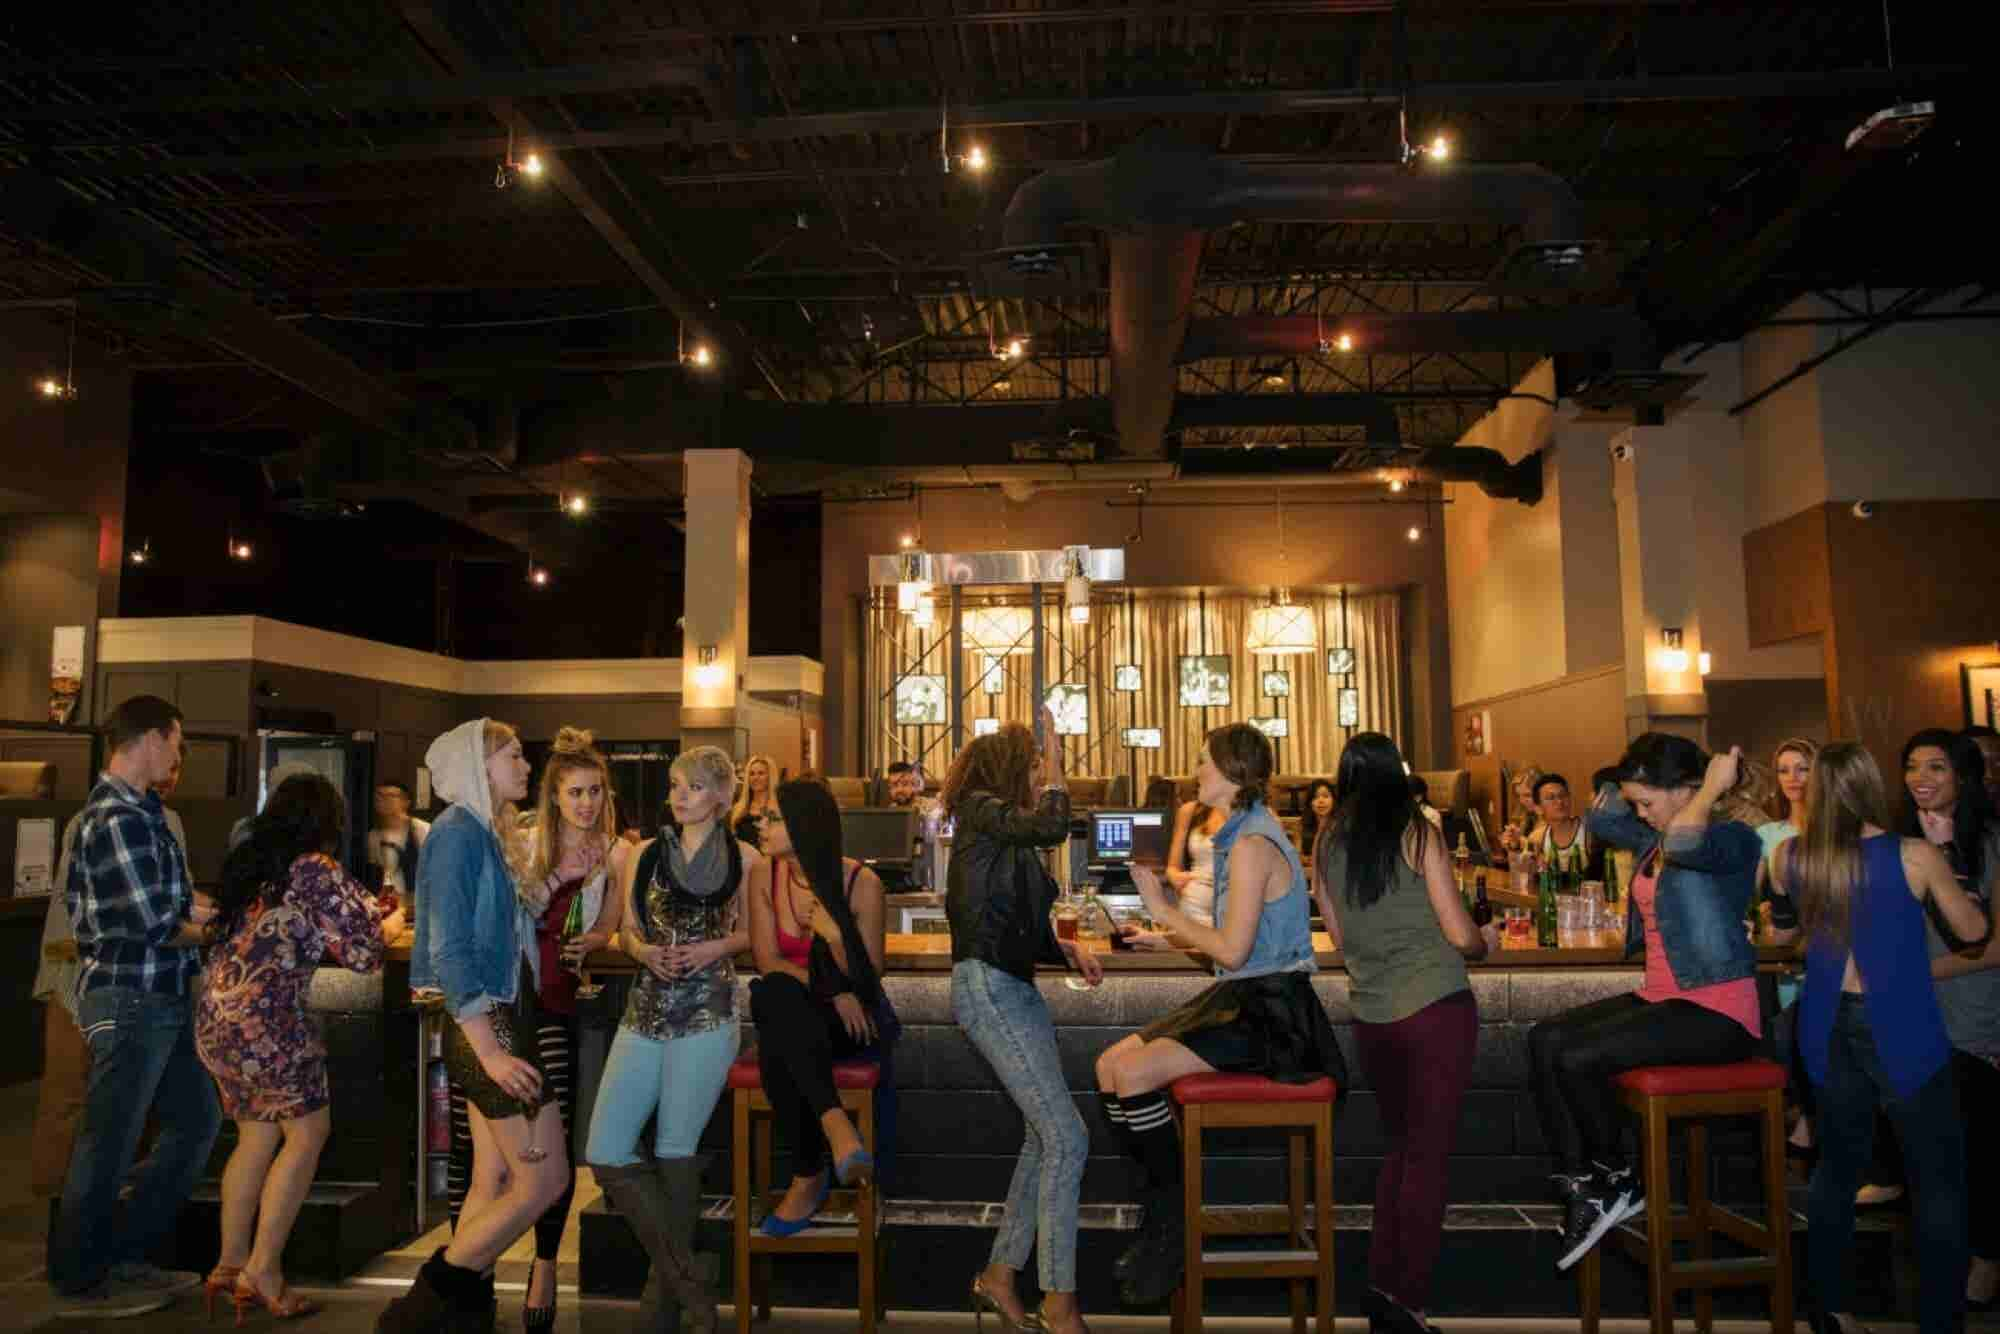 The Dos and Don'ts of Doing Business in a Bar (Infographic)